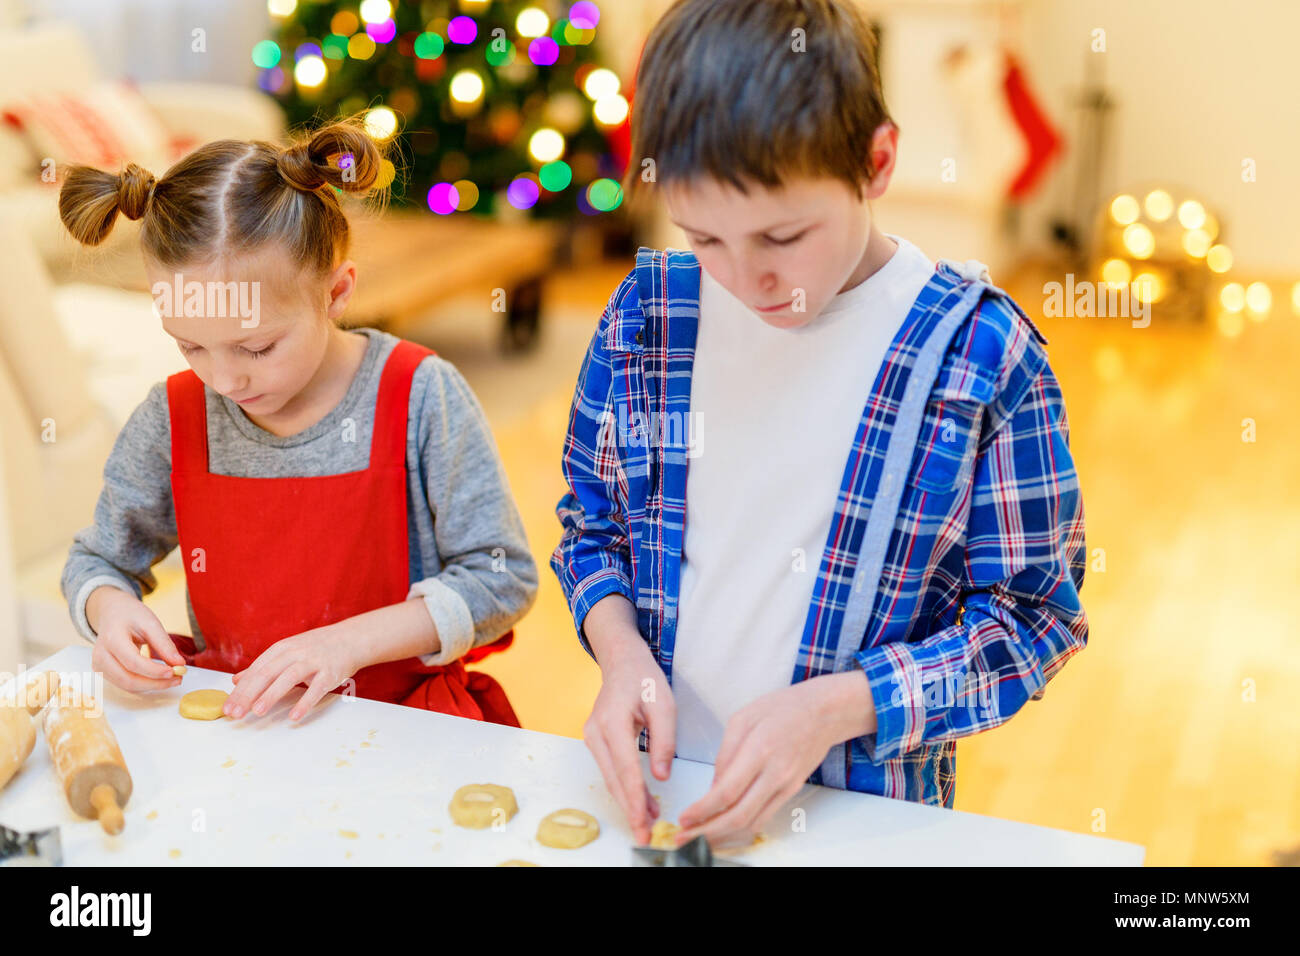 Two kids baking gingerbread cookies at home on Christmas eve - Stock Image